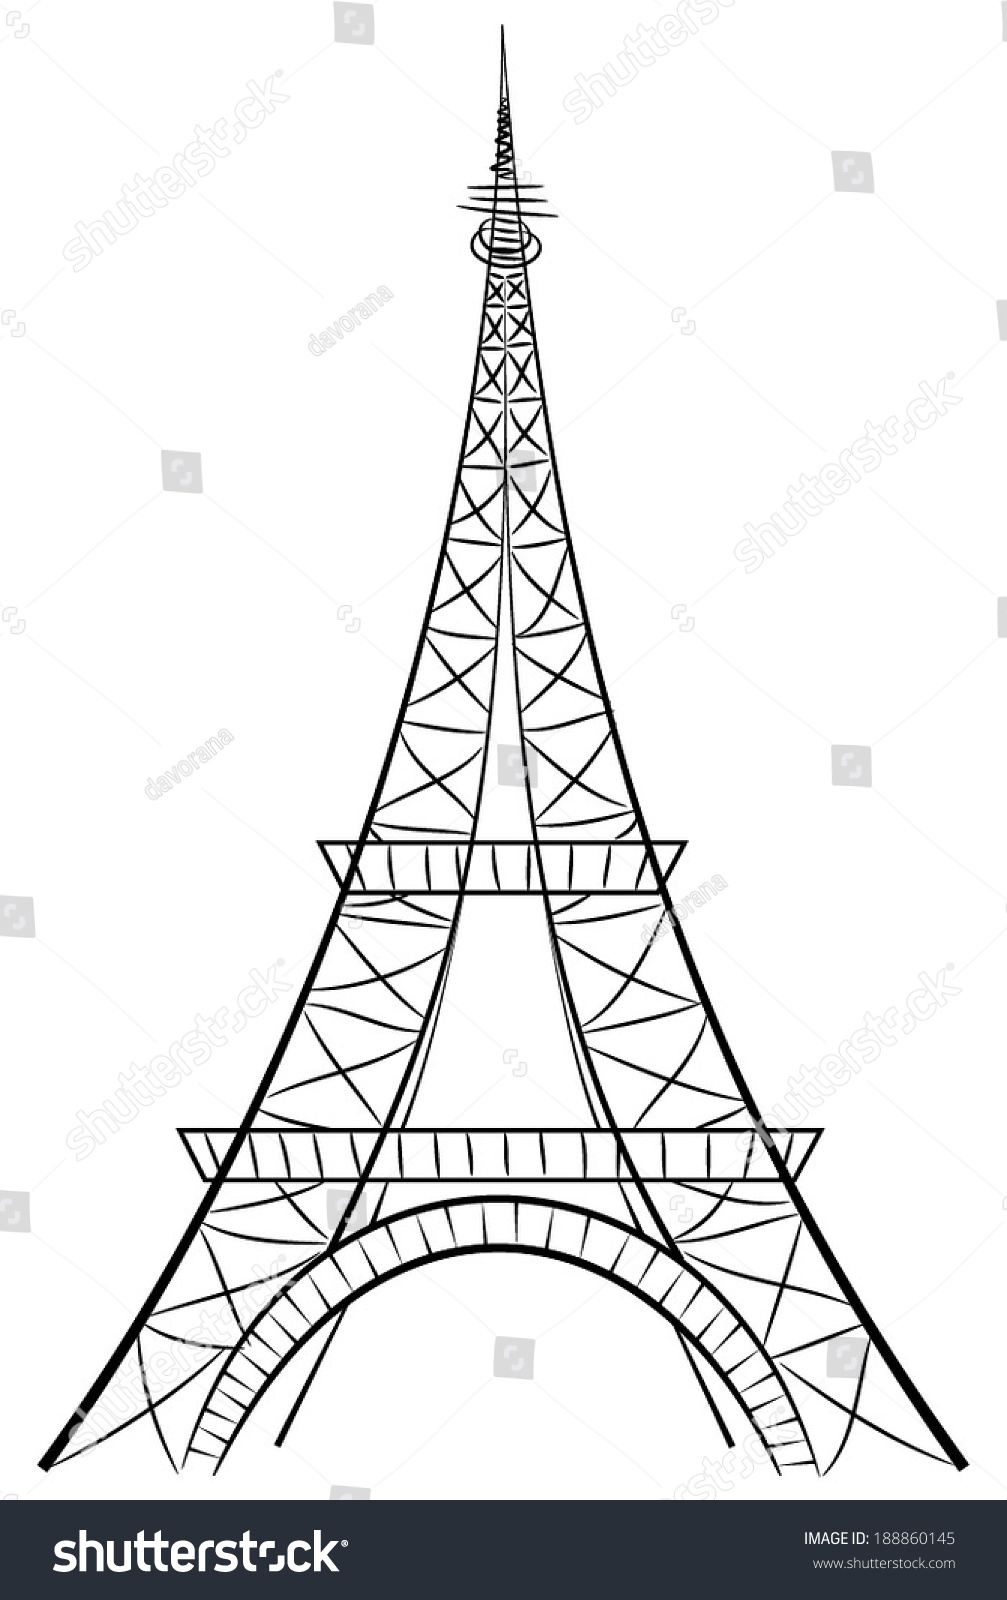 Eiffel tower most famous symbol france stock vector 188860145 eiffel tower the most famous symbol of france capital paris eifel tower thecheapjerseys Image collections